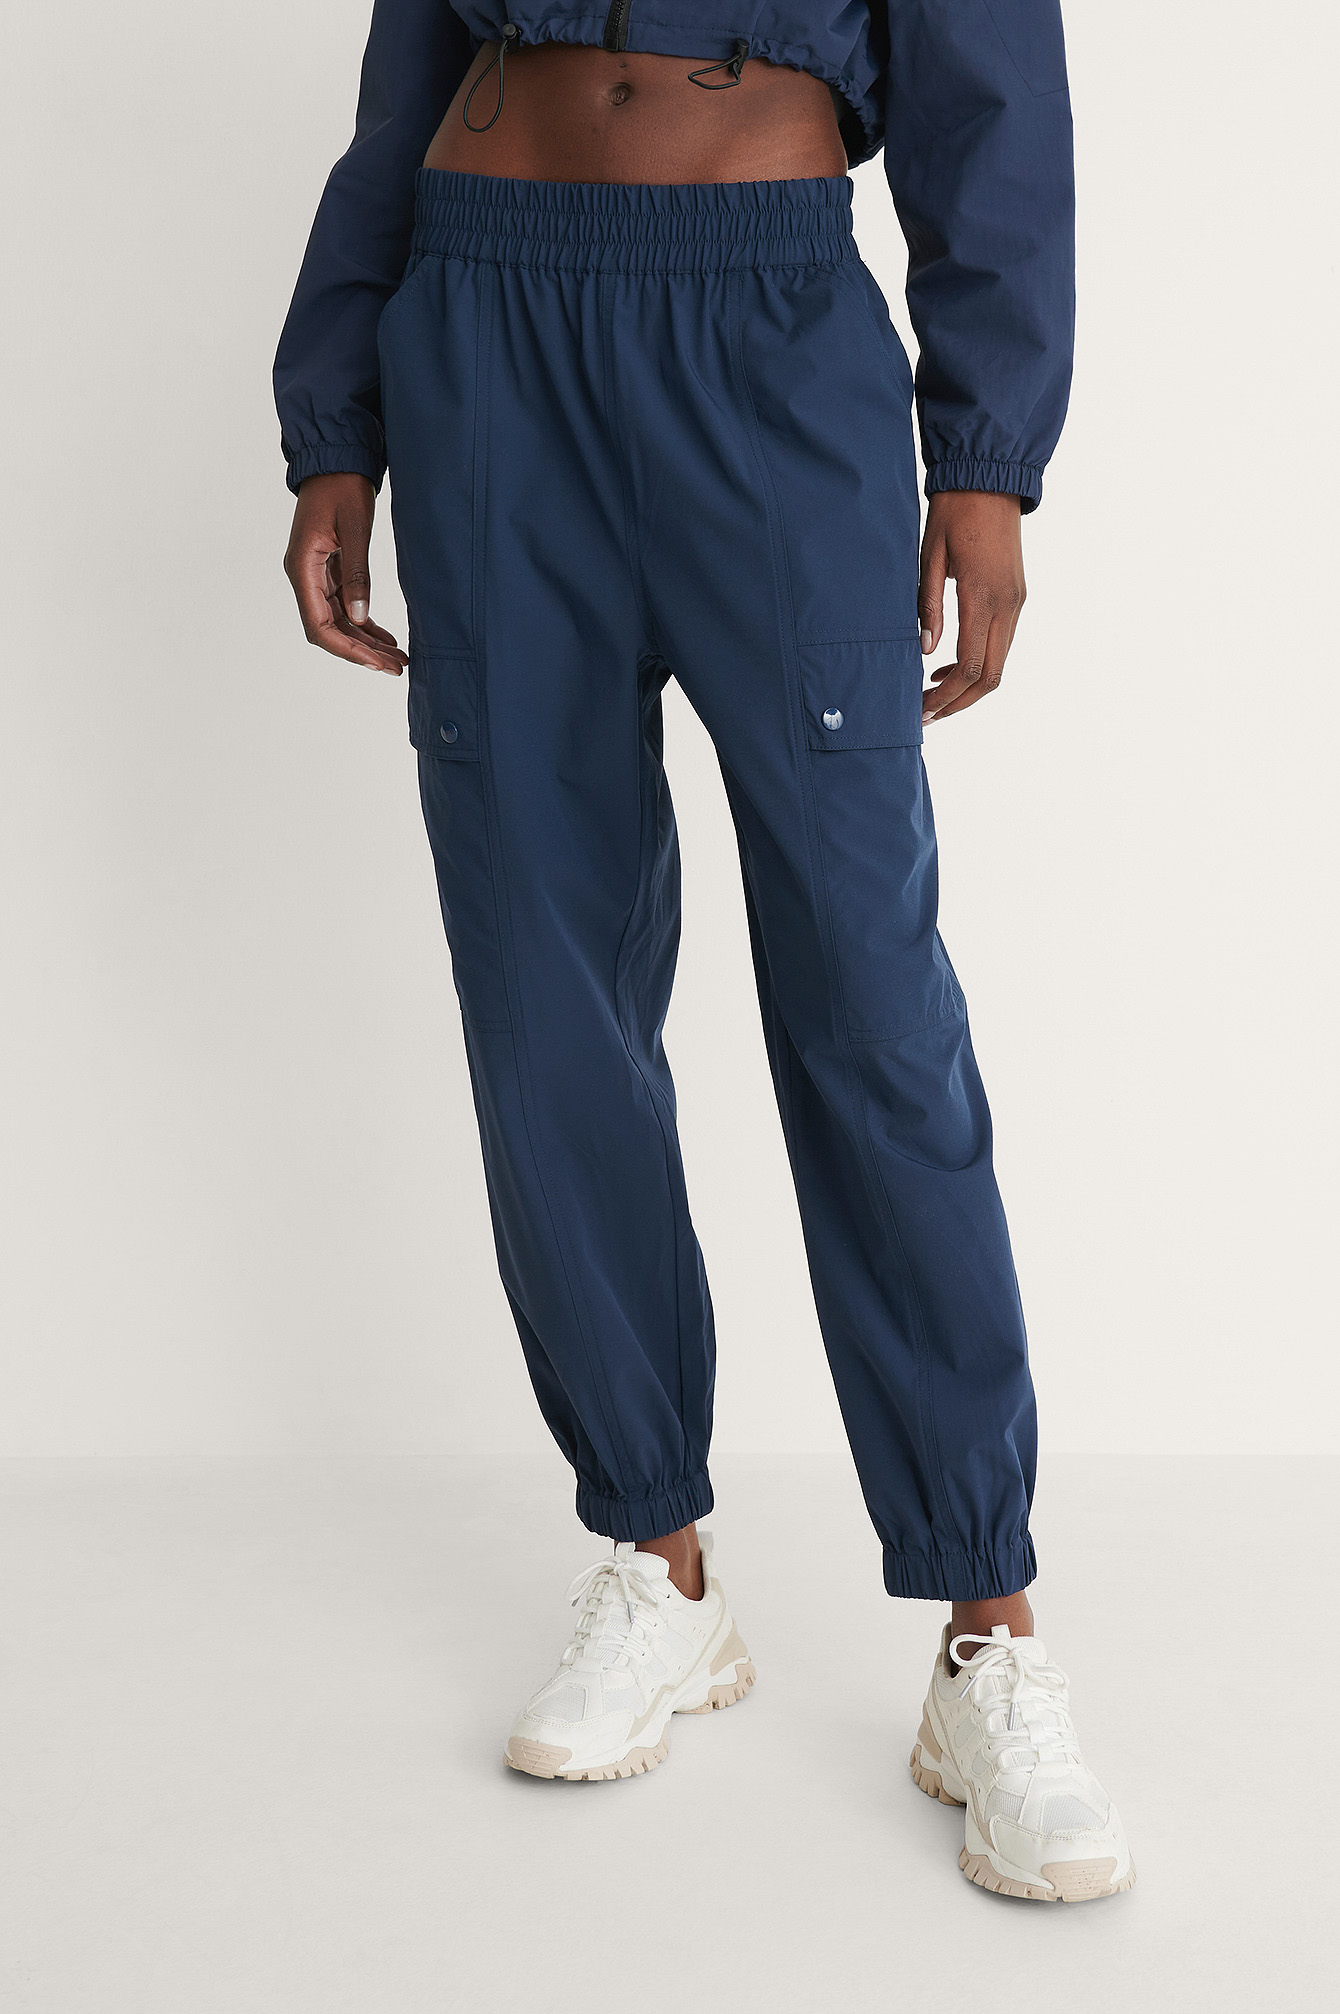 Navy Pantalon De Jogging